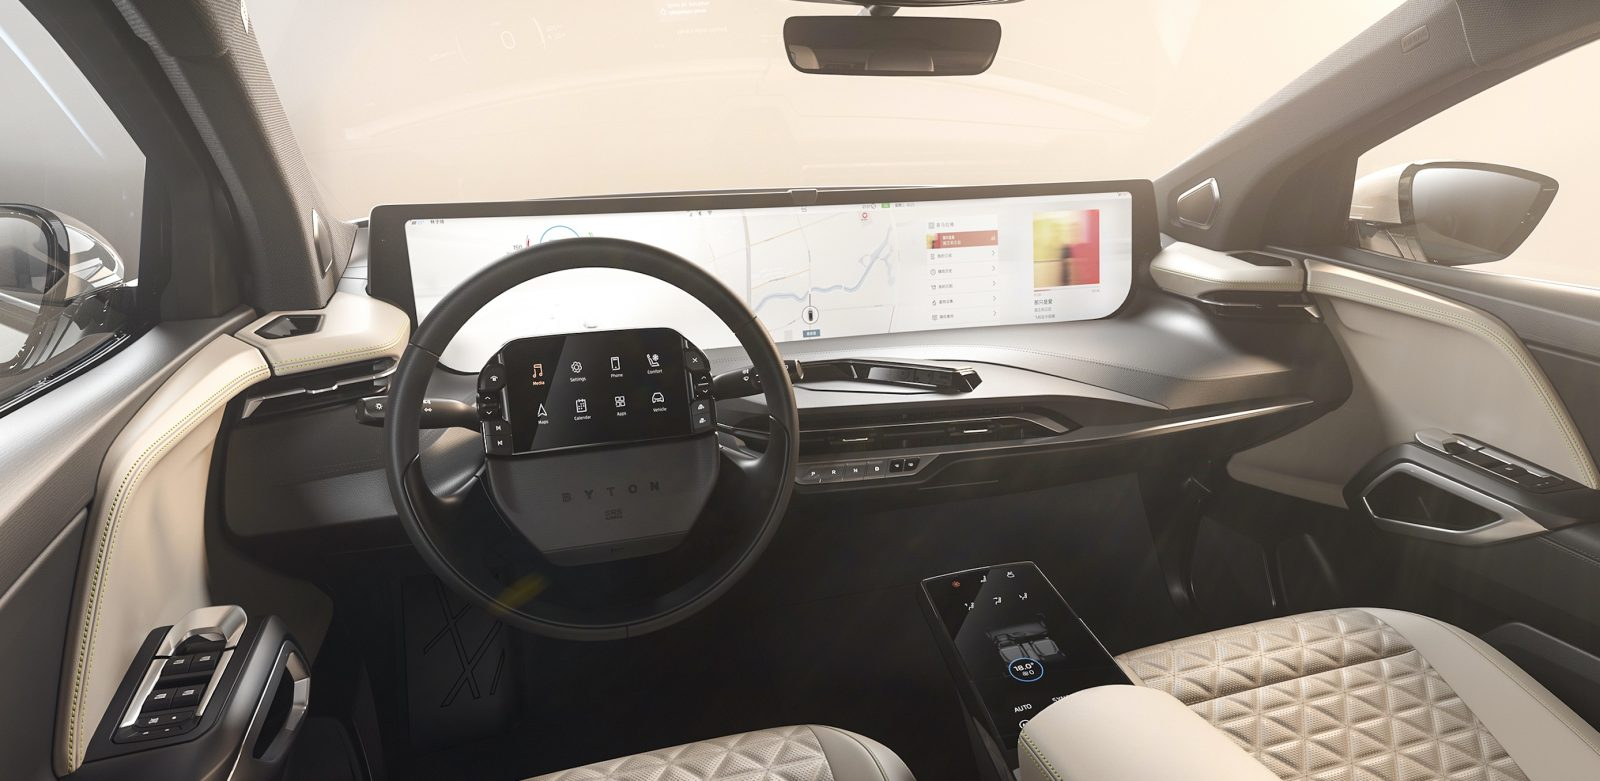 Byton unveils interior with insane screen real-estate for its production electric car